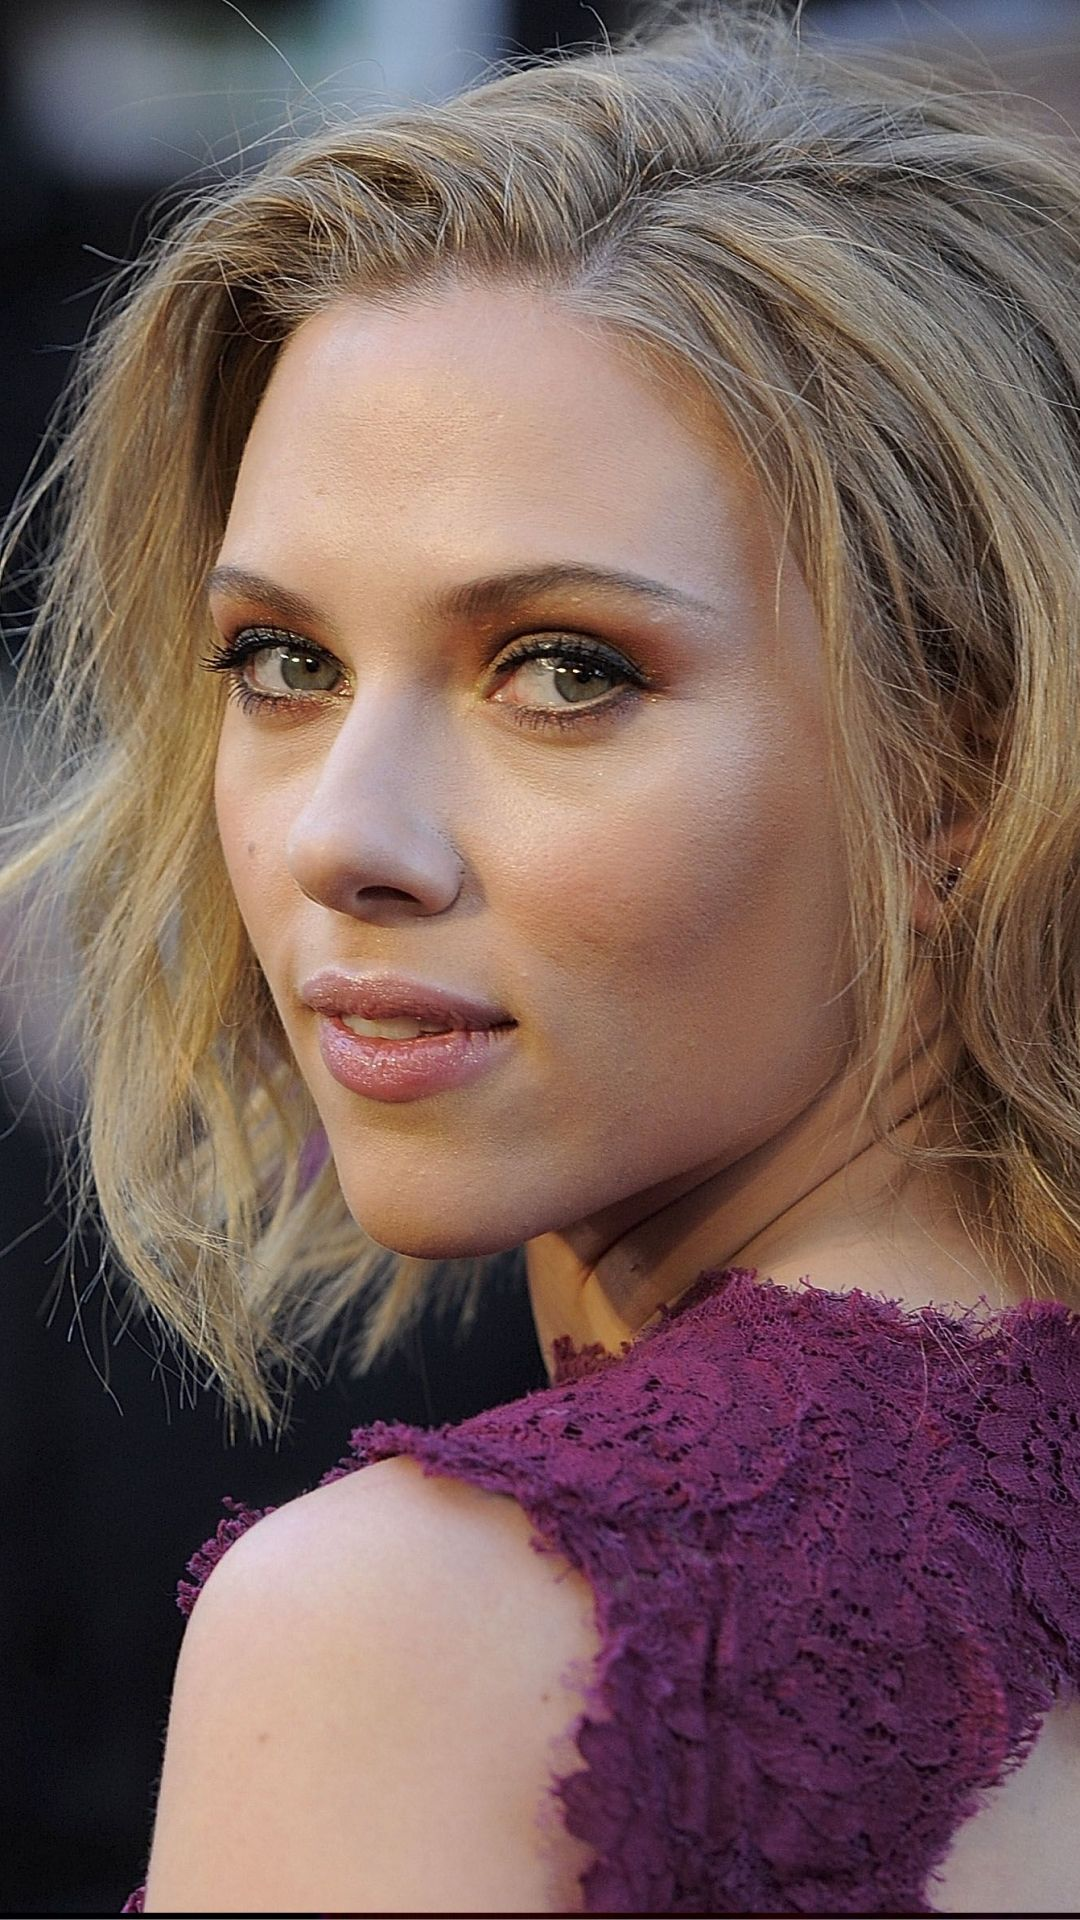 And what celebrity scarlett johansson really. And